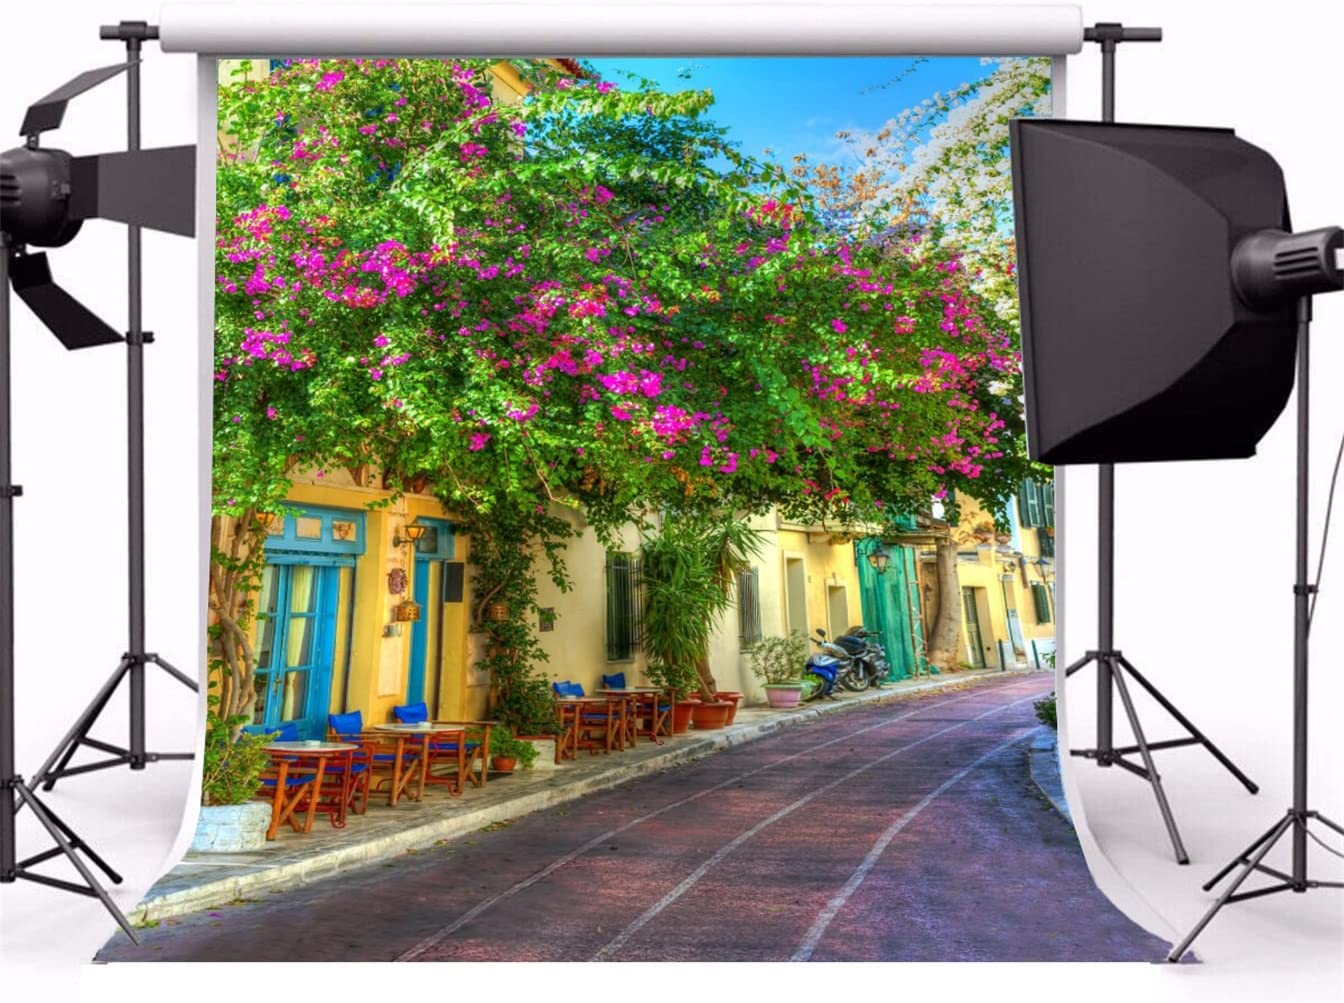 AOFOTO 10x10ft Photography Backdrop Background Wedding Painting Seaside Holy Church Blurry Floor Tree Toddler Girl Adult Lover Portrait Scene Photo Shoot Studio Props Video